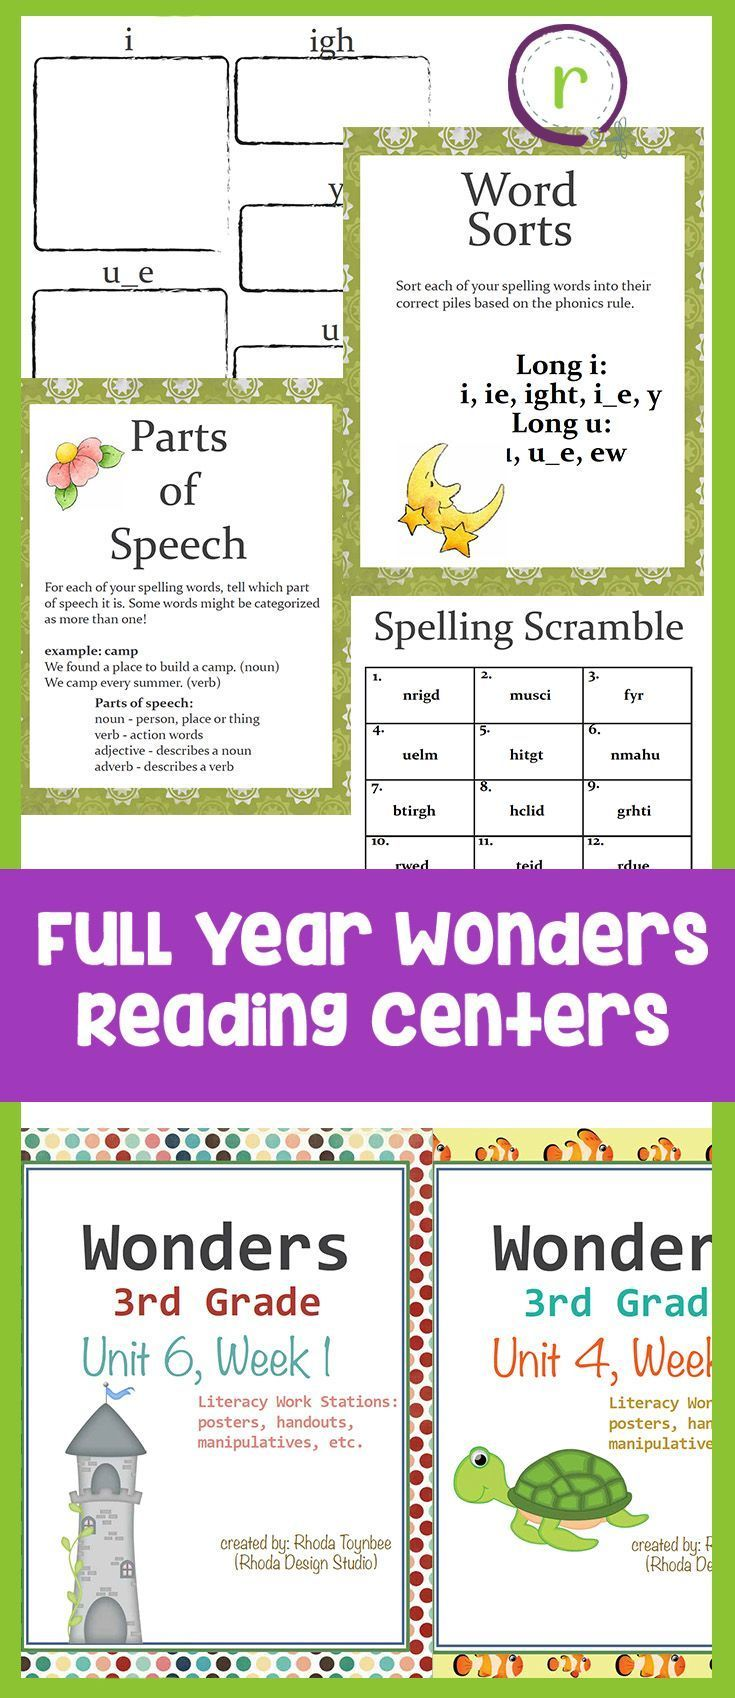 6 reading units with 5 weeks per unit of literacy centers that supplement the Wonders reading program. Unit Focus Posters: Essential Unit Questions Weekly Skills  Literacy Work Stations: Parts of Speech Sentence Editing Flash Cards Word Scramble Word Sort